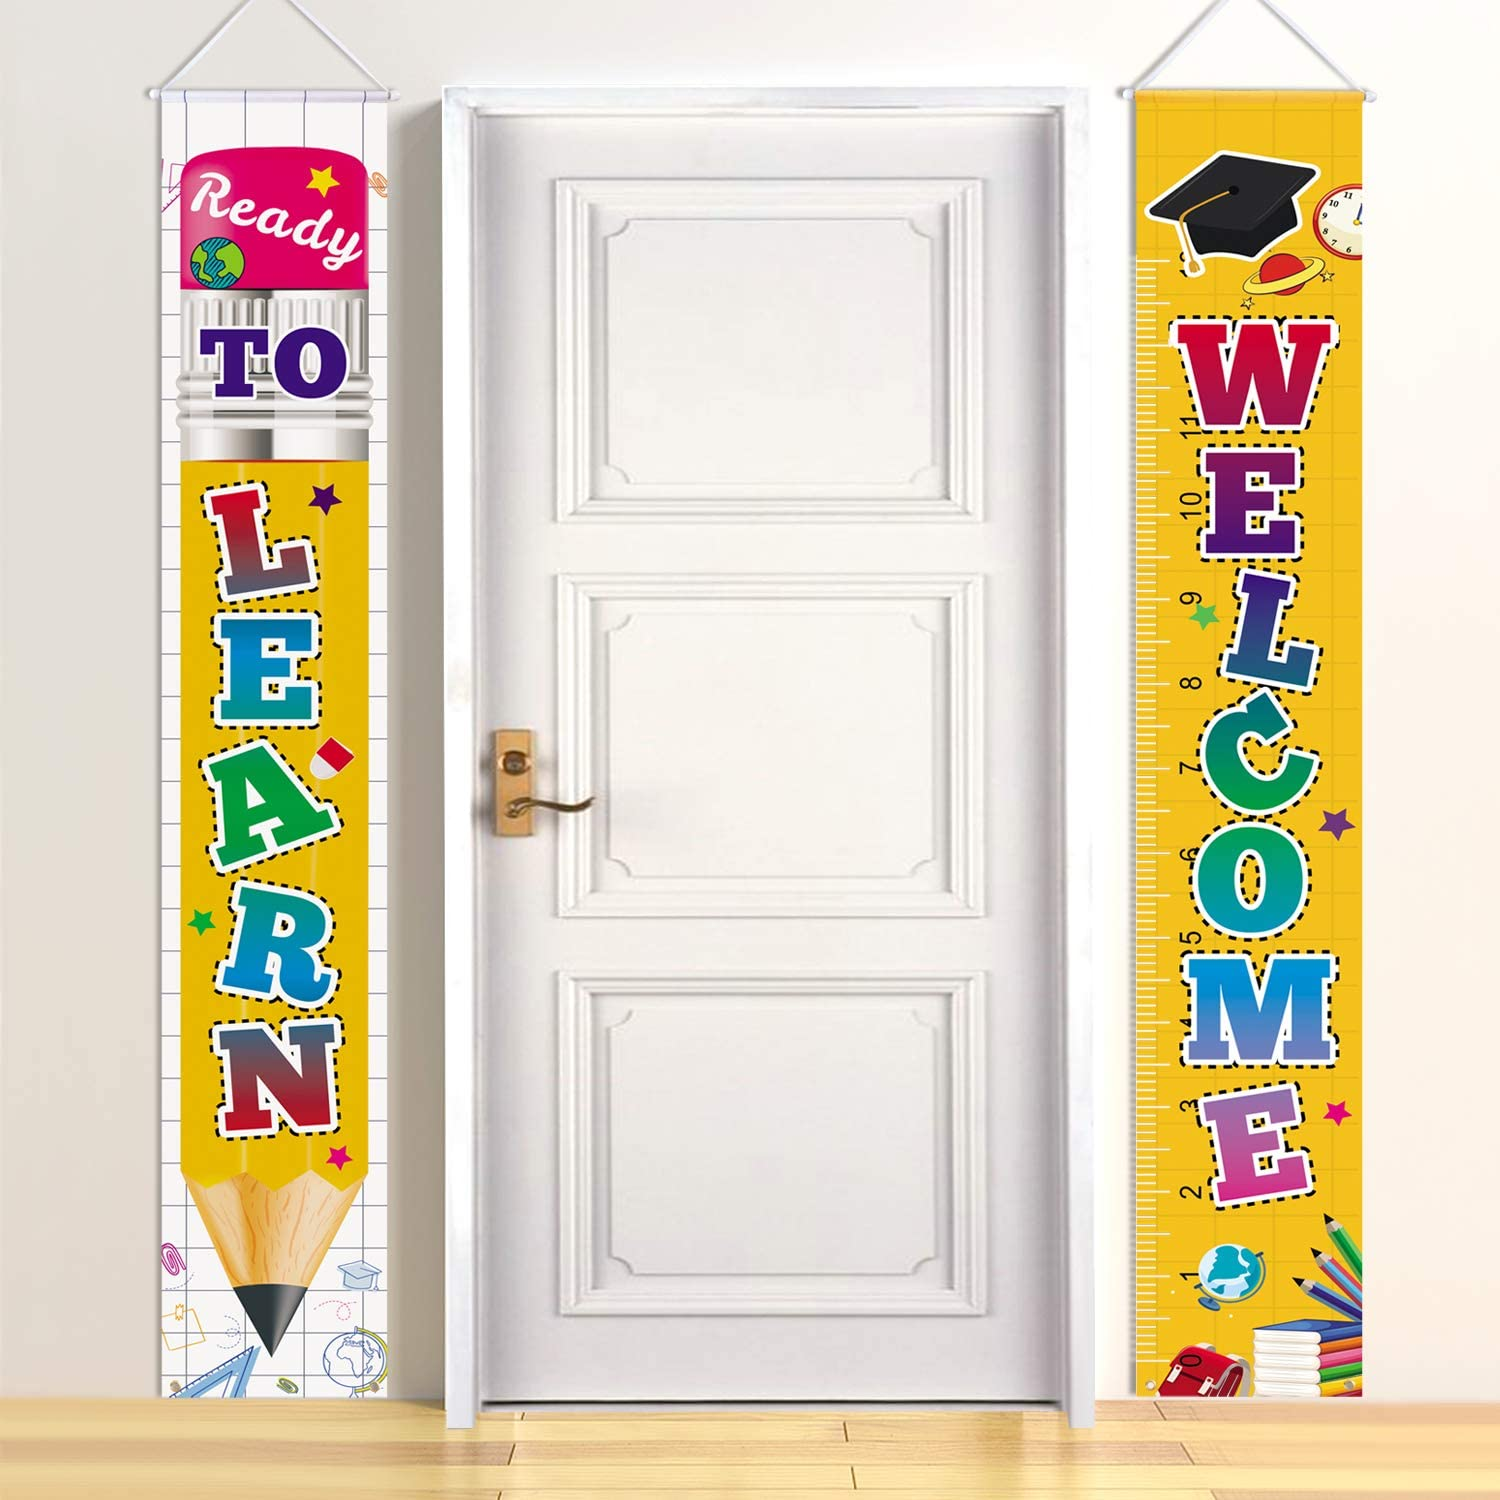 Latoy Welcome Back to School Decorations Party Hanging Banners Set - Welcome & Ready to Learn Porch Sign Set Party Supplies for Kindergarten Pre-School Primary High School Classroom